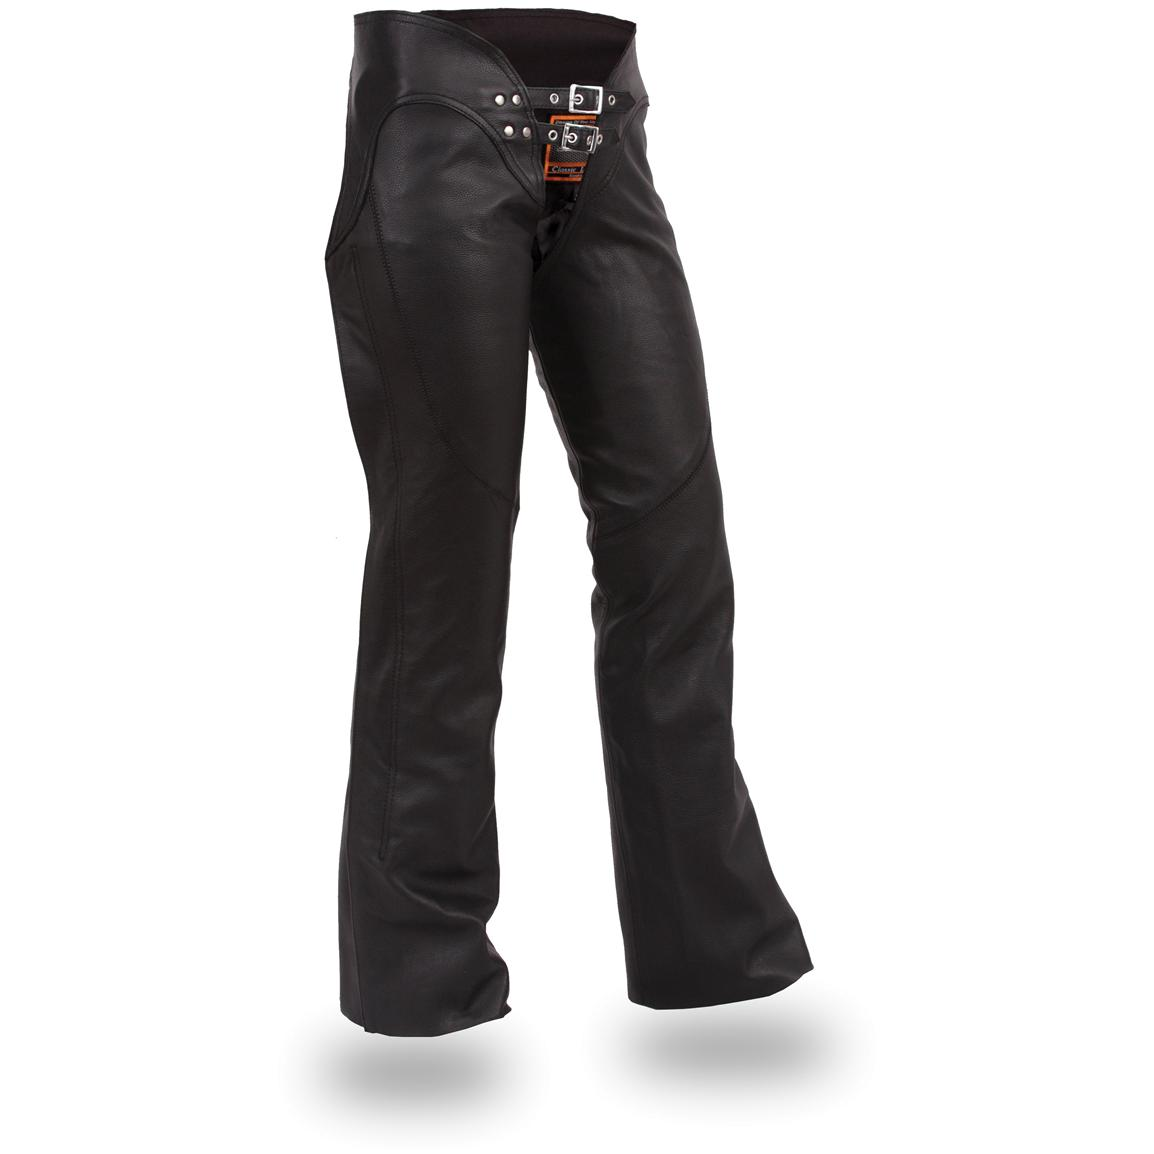 Women's First Classics® Double-belted Chaps with Adjustable Thigh Fitting, Black